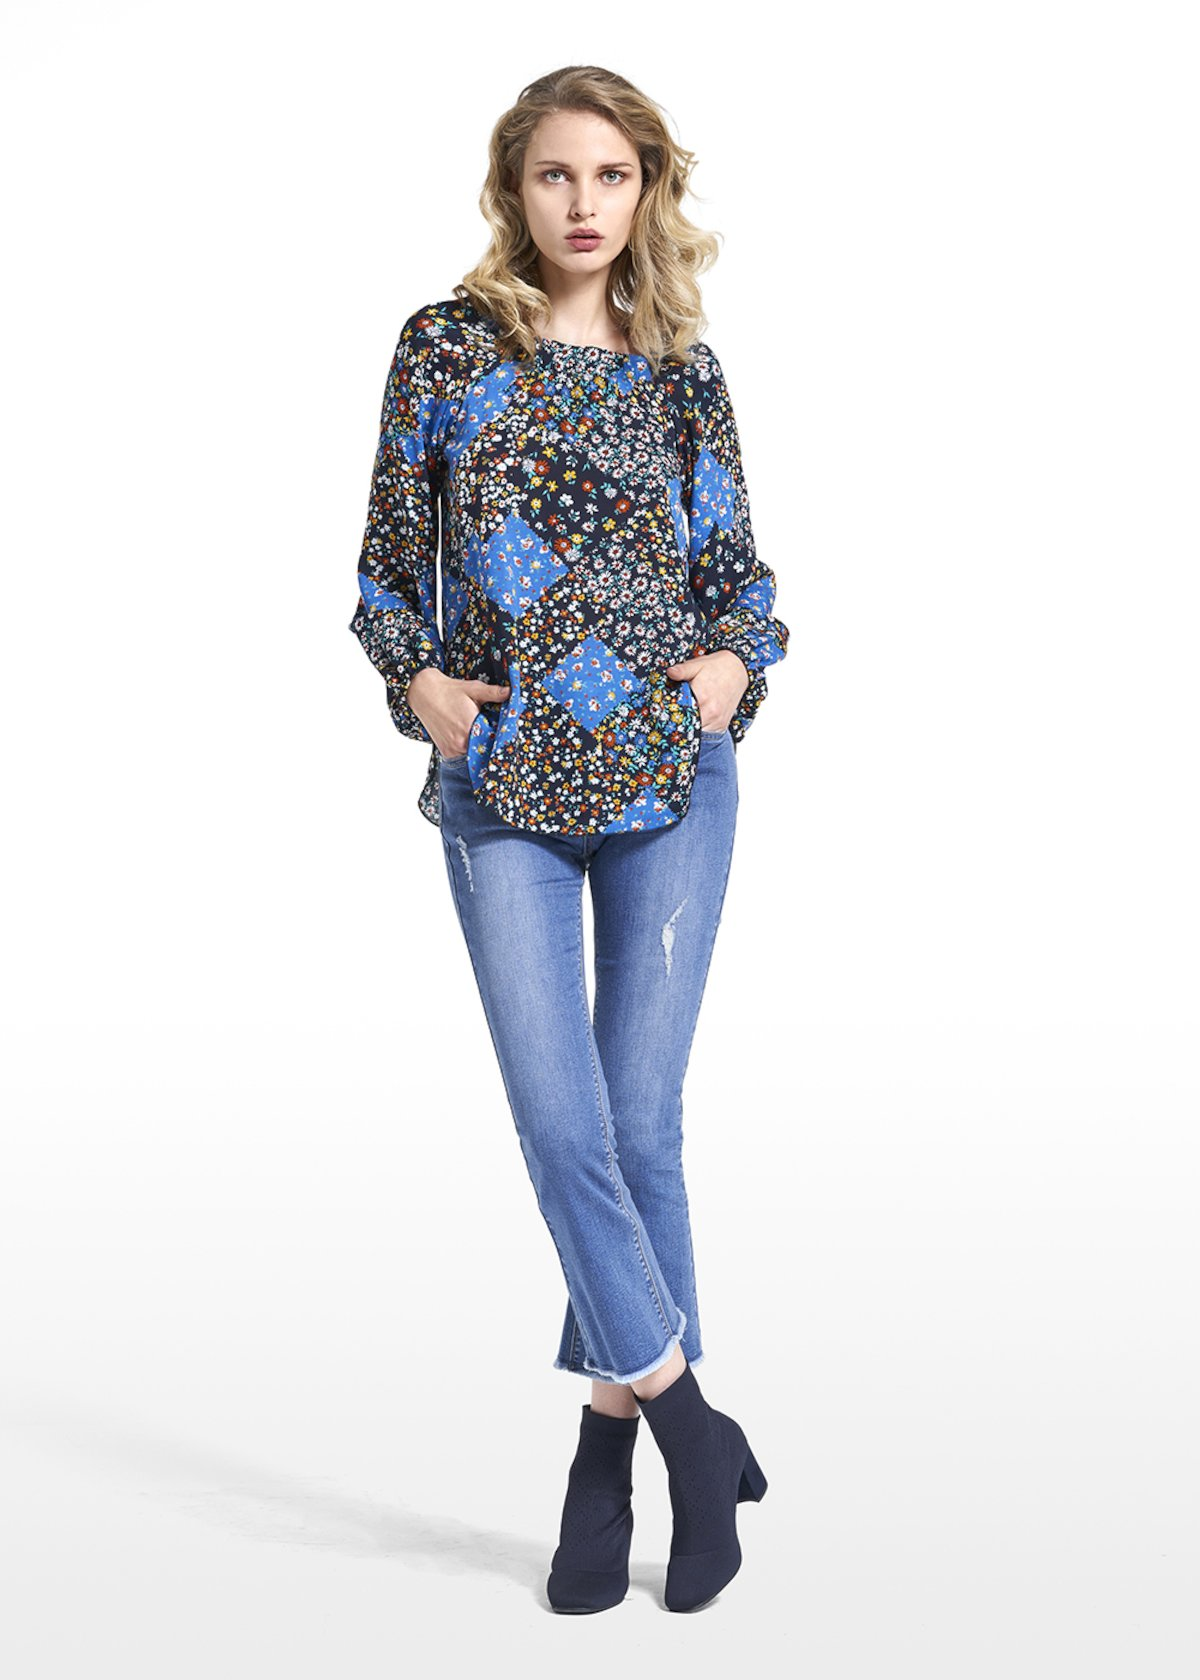 Blouse Cristina patterned covent garden with gathering on the neckline - Blue / Avion Fantasia - Woman - Category image